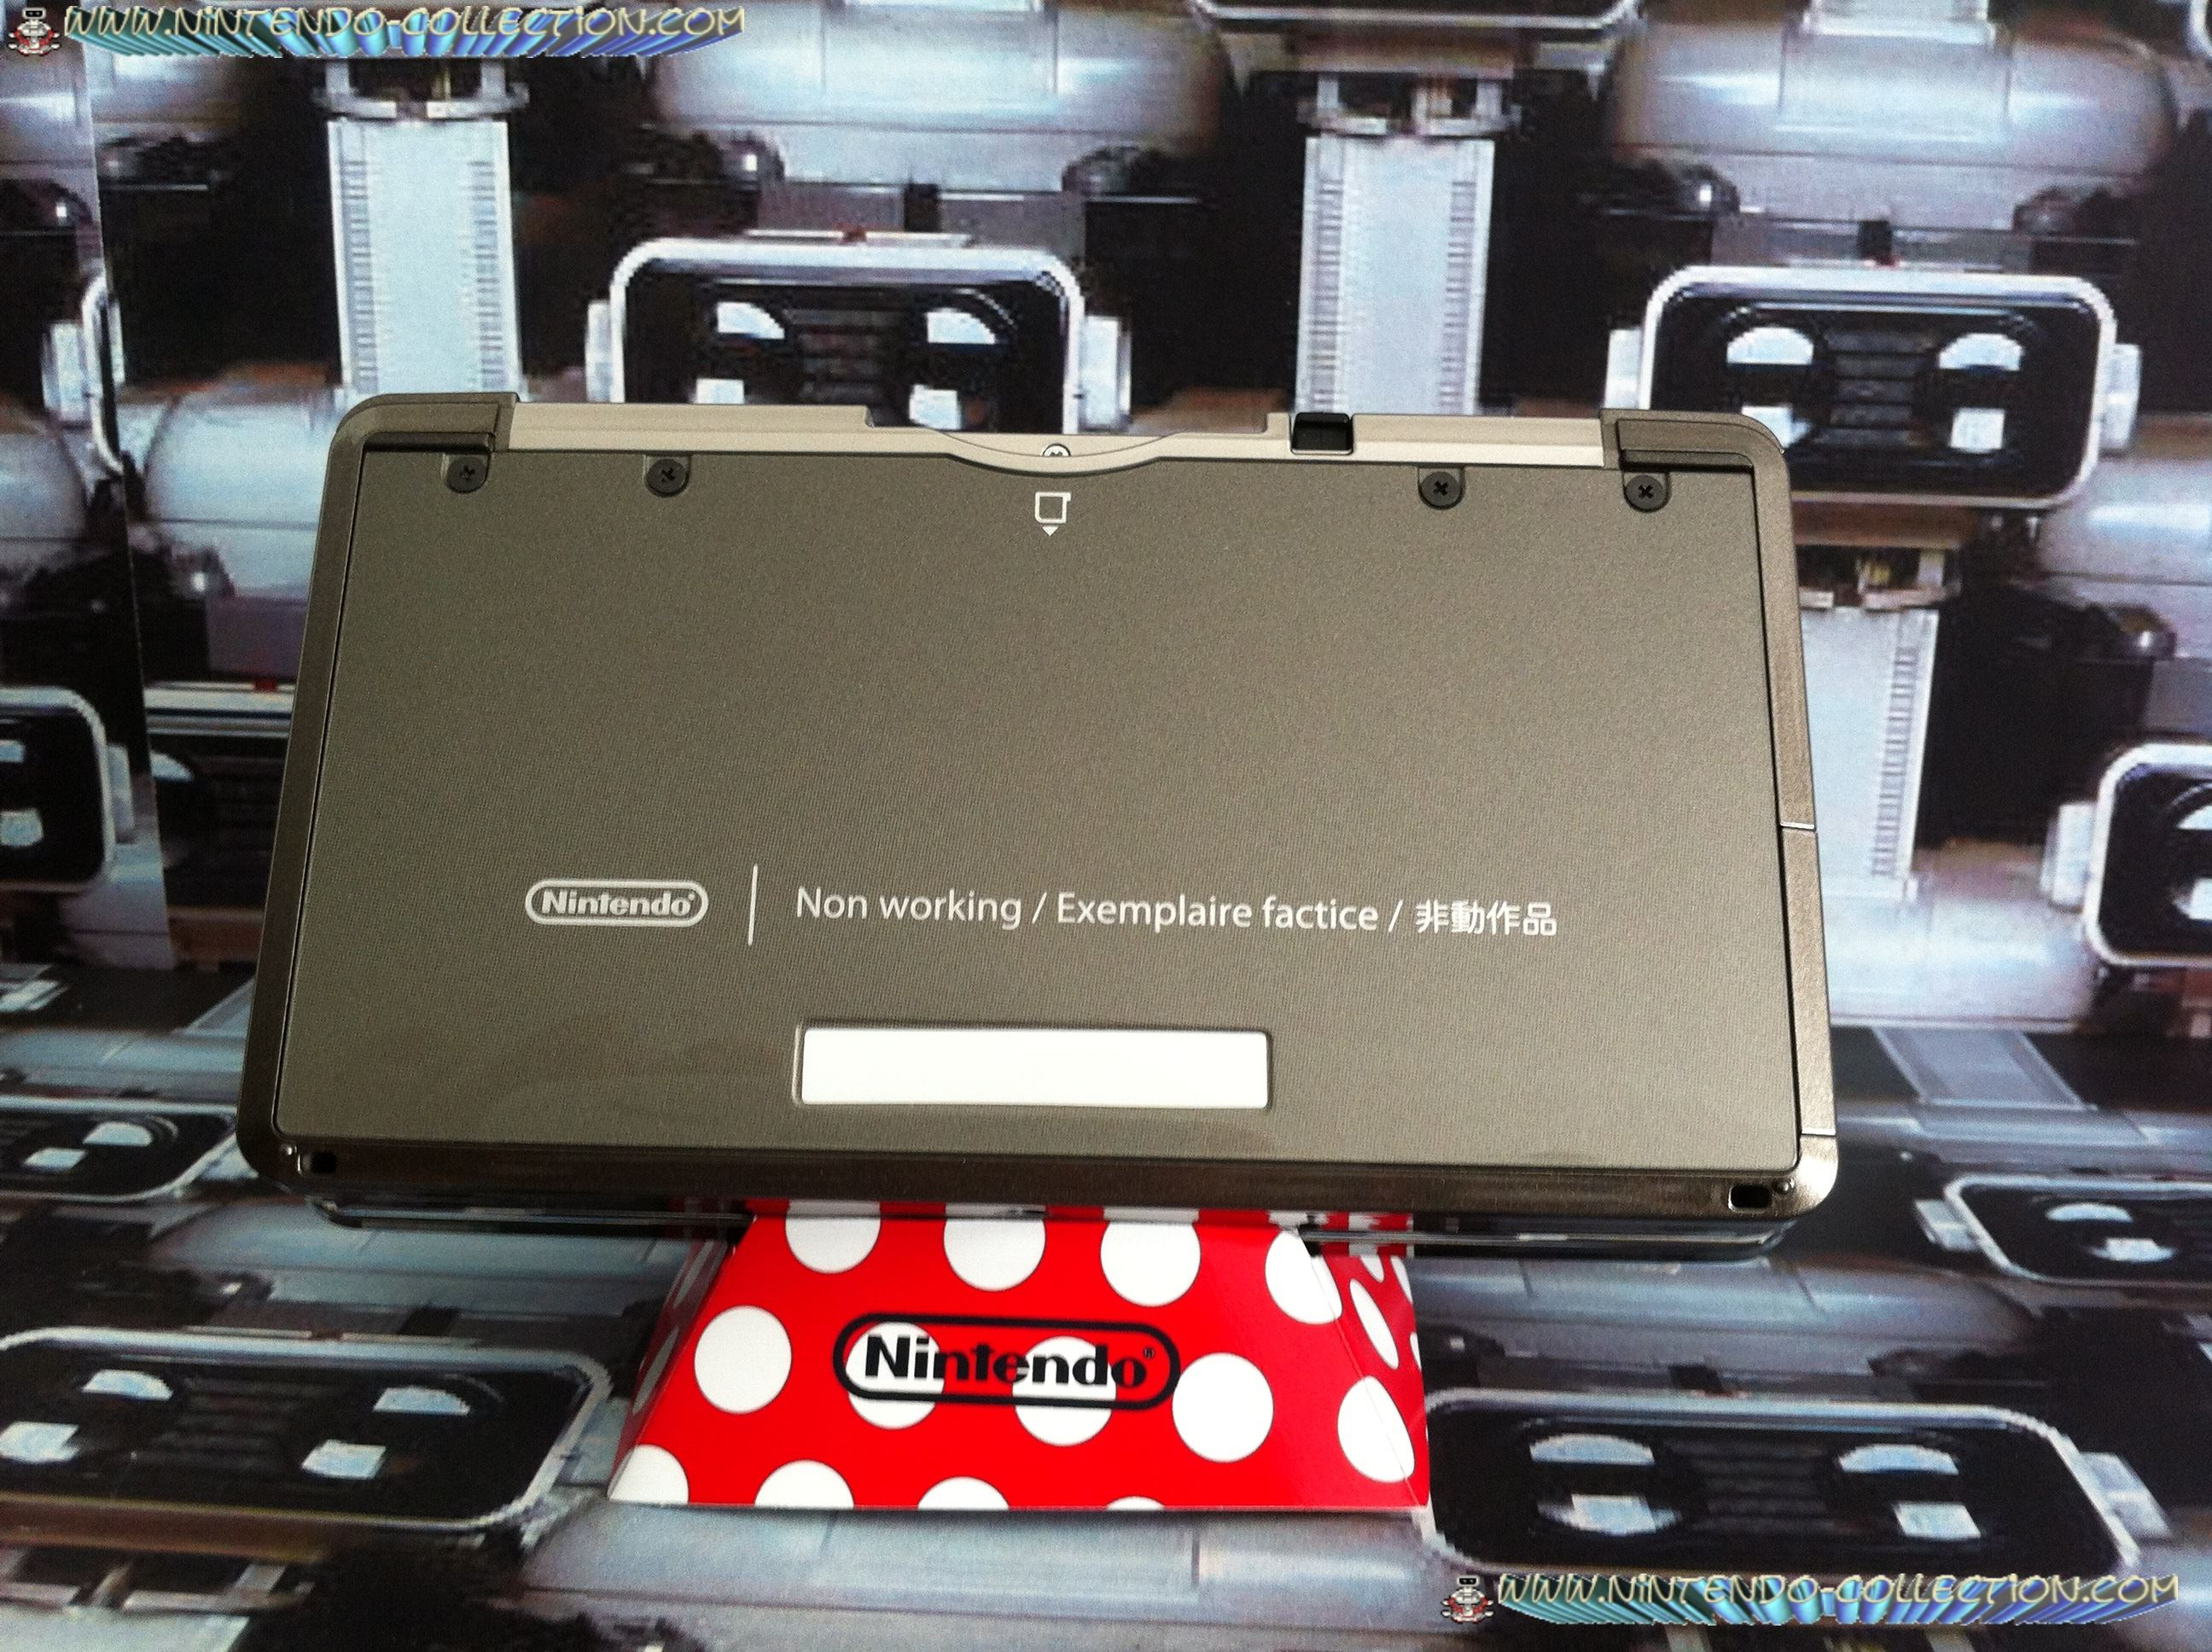 www.Nintendo-Collection.com - Nintendo 3DS Como Black Non Working Unit Demo Store display Factice -